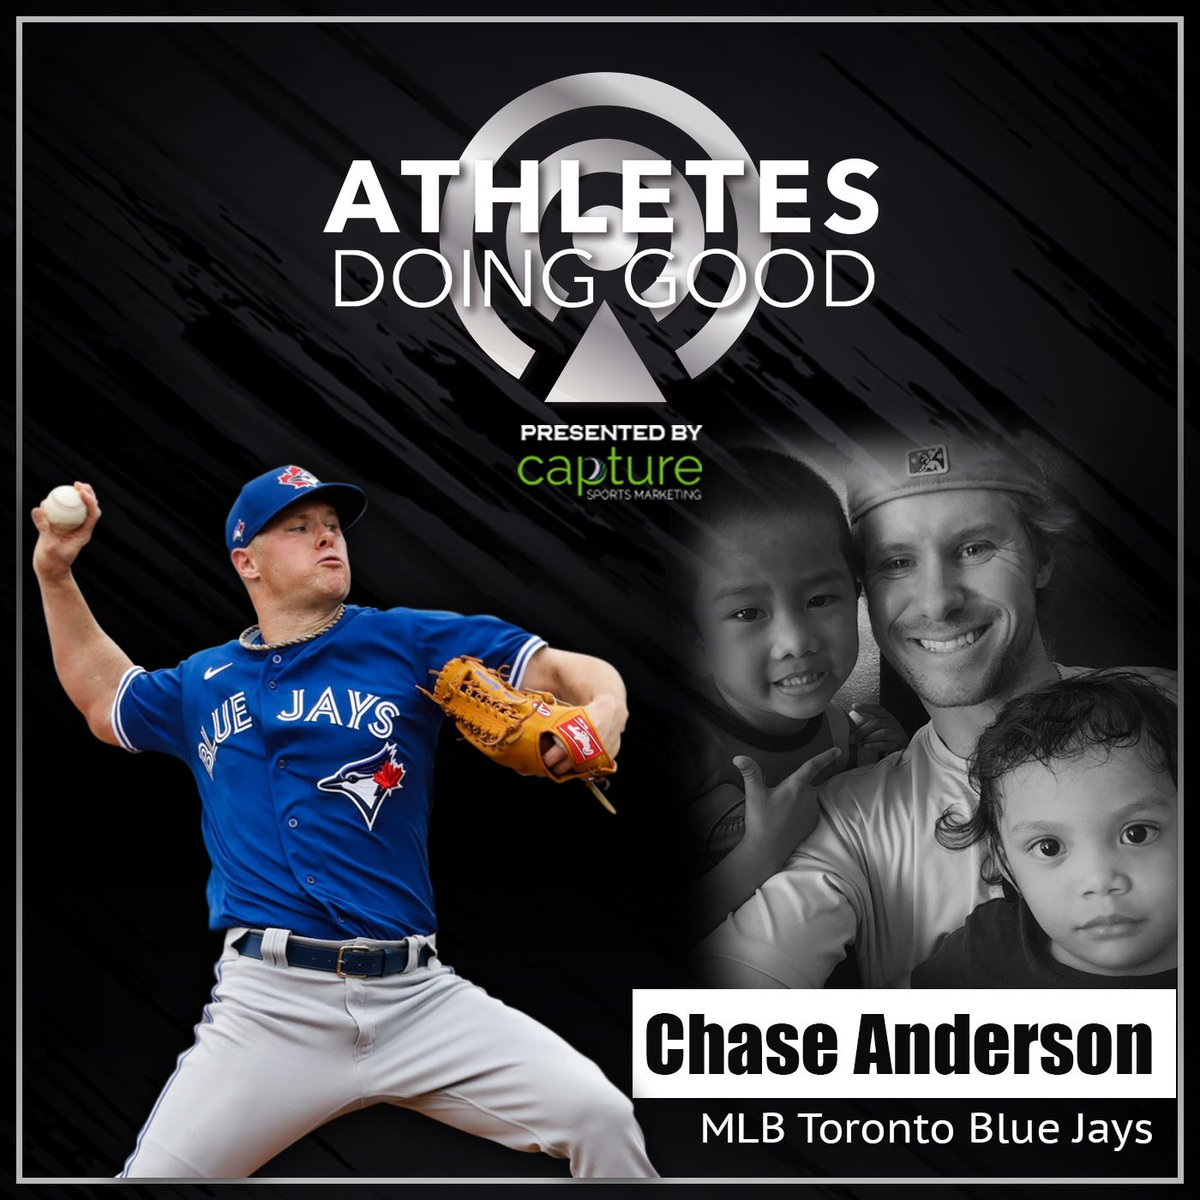 .@BlueJays @ChaseAnderson87 and his wife @AnnaAnderson86 join us on the Athletes Doing Good Podcast with @ChelleeSiewert & @JenLada! Chase shares his life motto & Anna shares why she is proud of Chase. Click the link below to listen! #AthletesDoingGood  https://t.co/LW7WTRYP2i https://t.co/Xe1K3uMya3